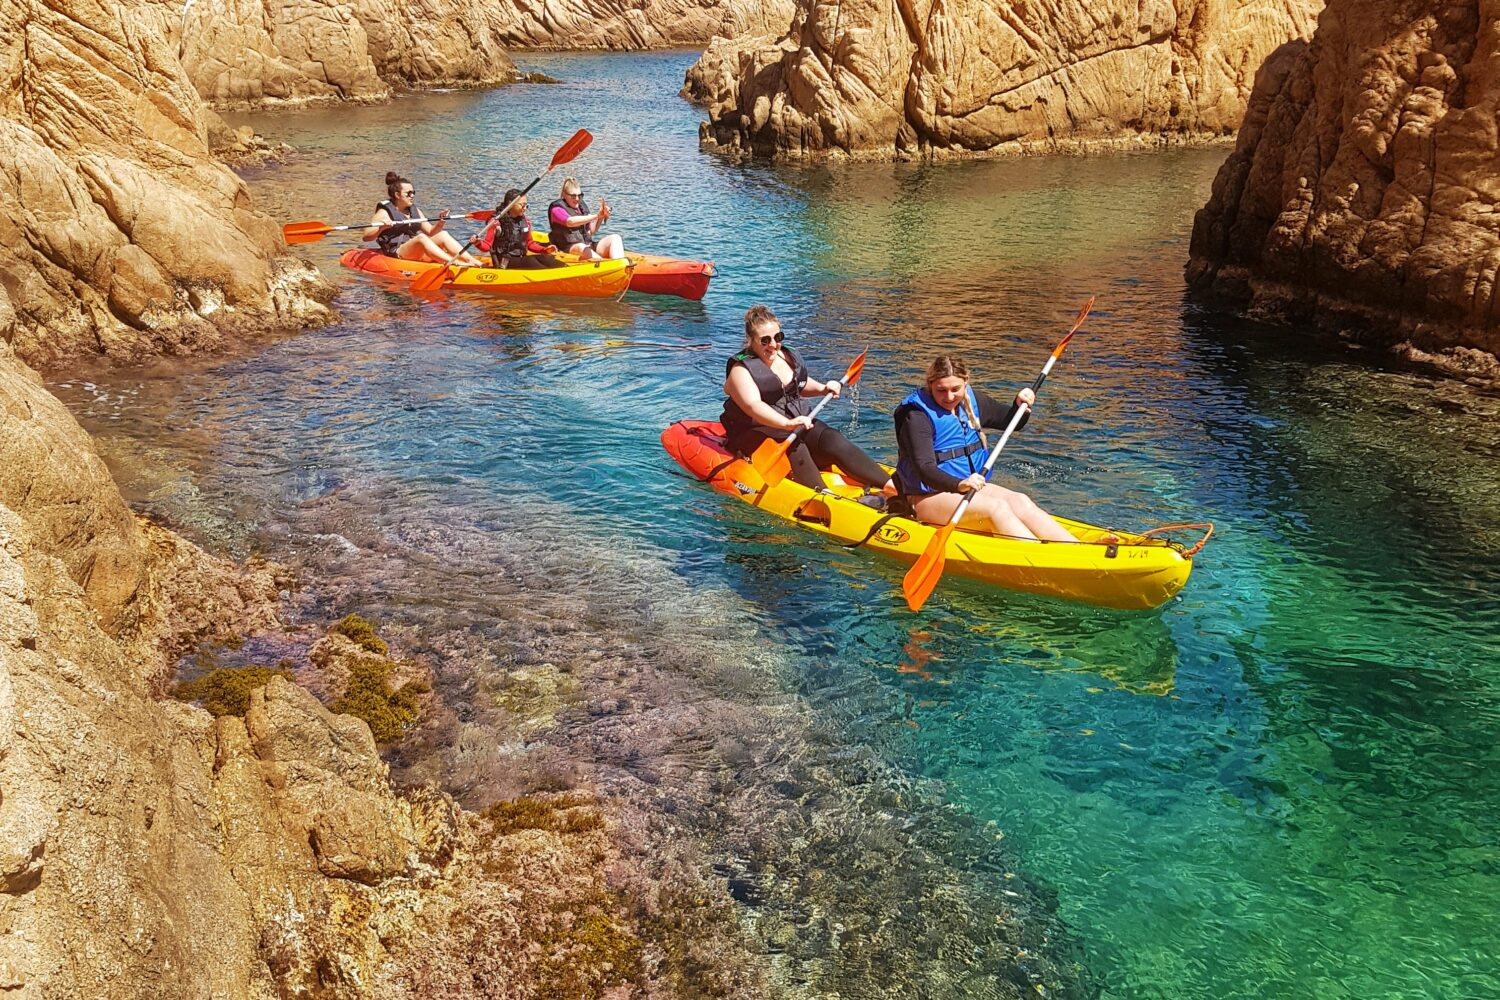 Sandstone cliffs and coves in the Costa Brava